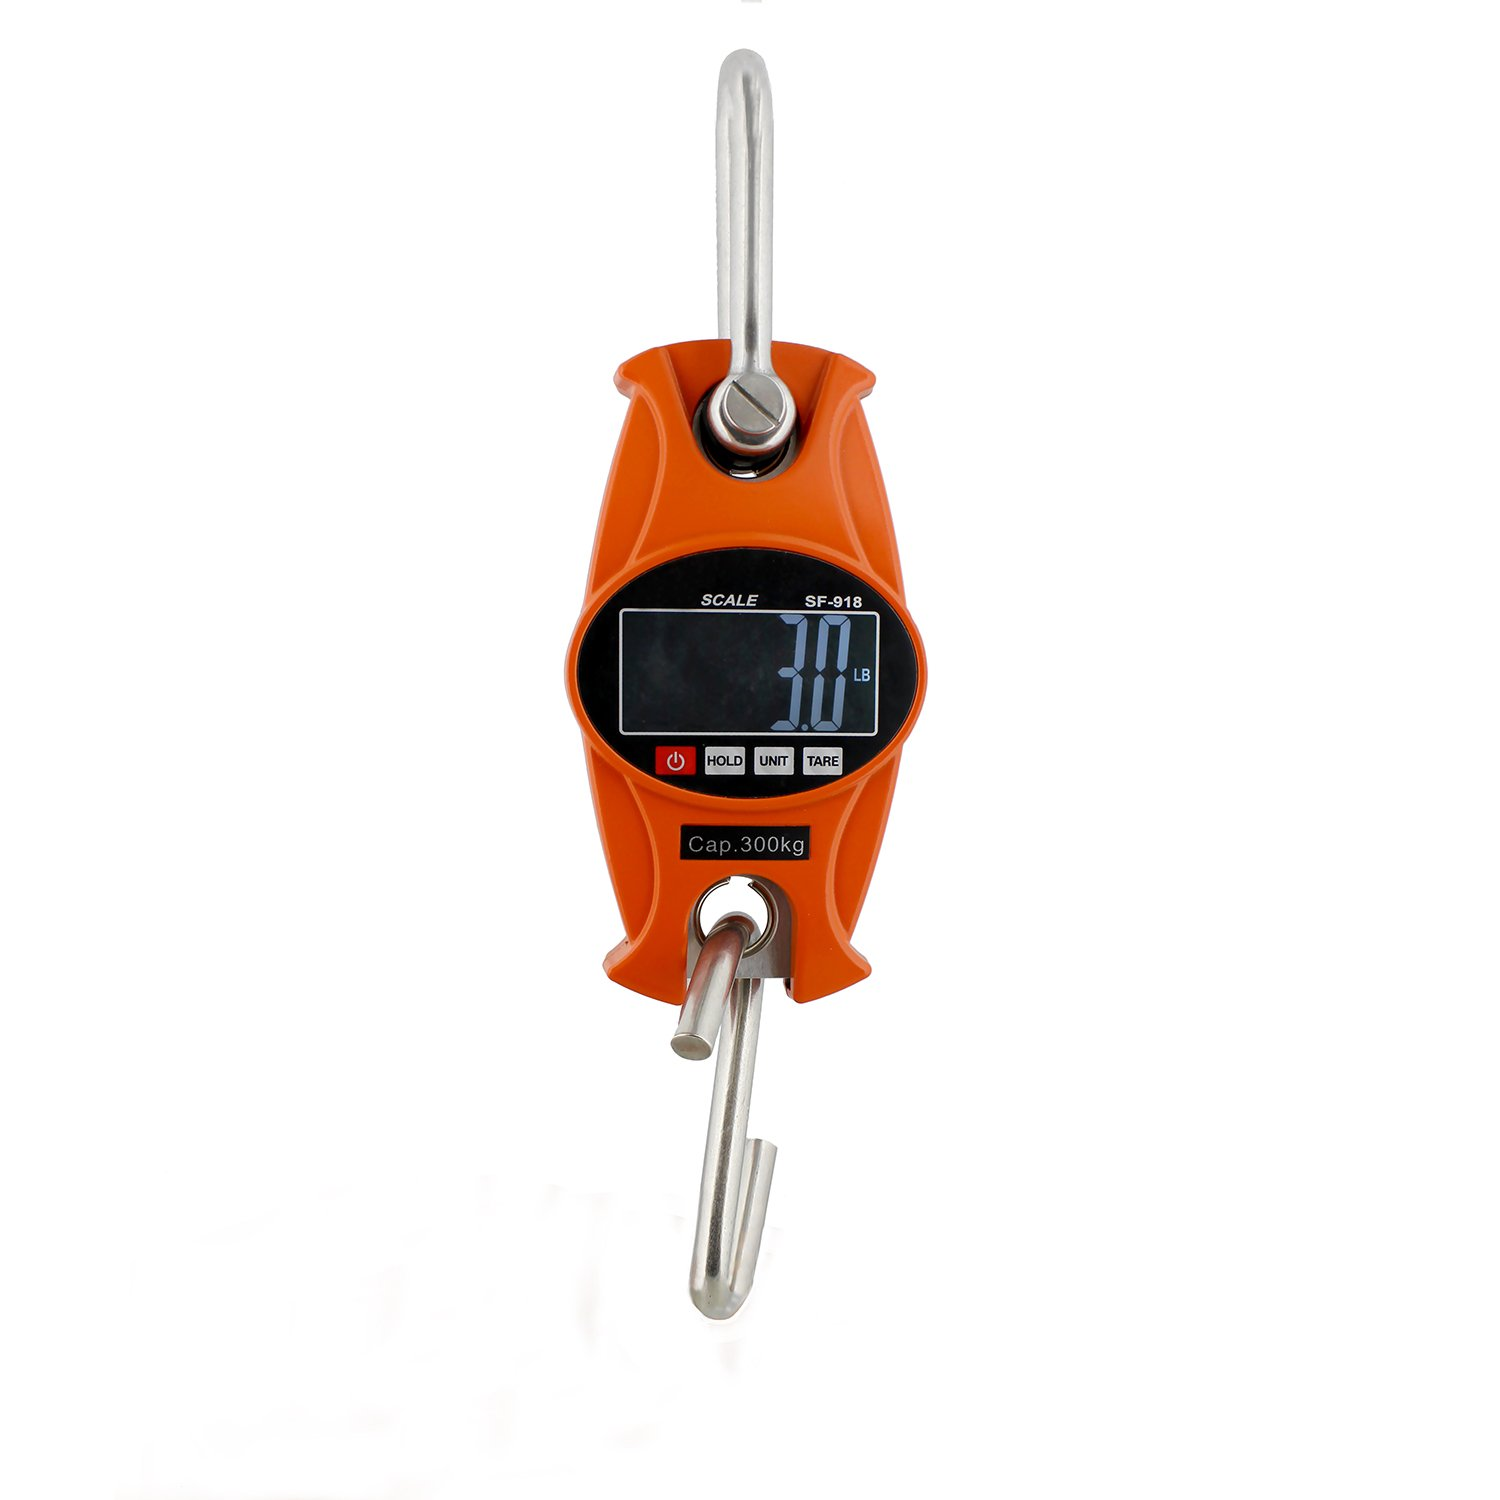 Rural365 Digital Hanging Scale 660 lb Hook Mini Crane Scale in Orange - for Lamb, Calf, Fishing, Hunting Weight by Rural365